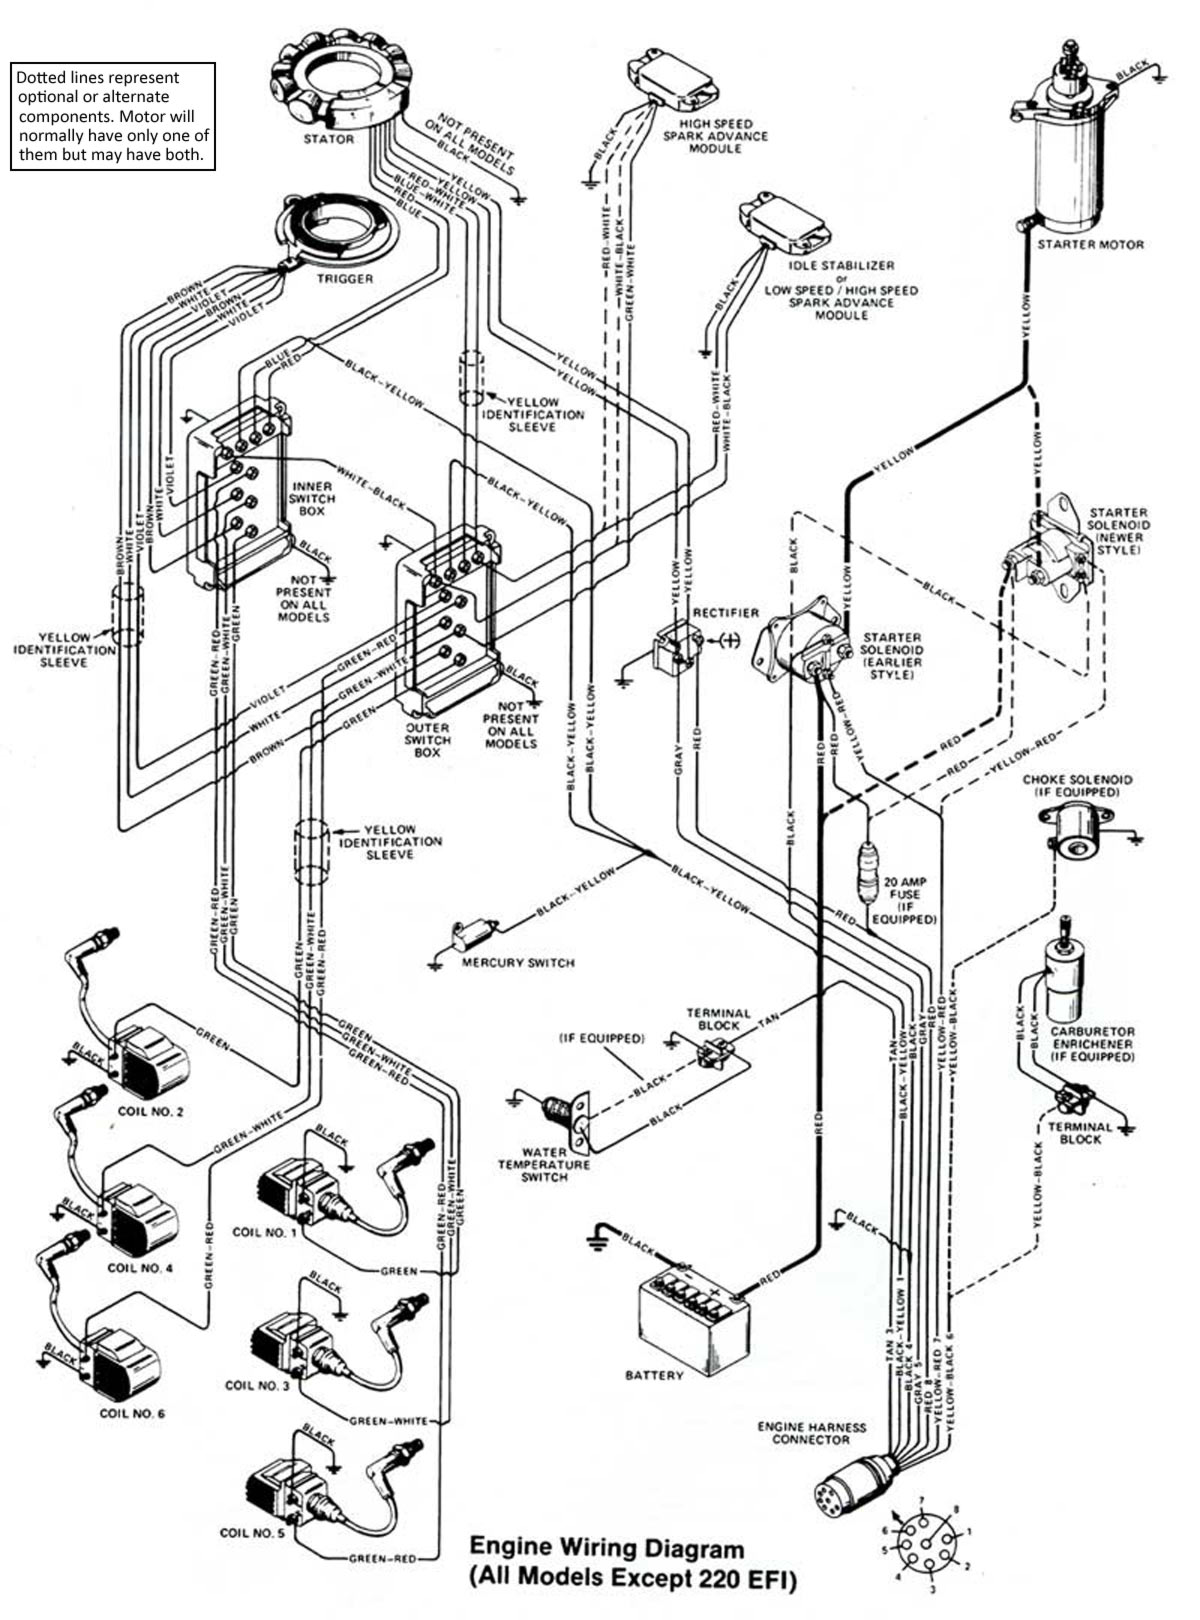 1970 mercury outboard wiring diagram wiring library rh 86 skriptoase de Mercury Outboard Tachometer Wiring Diagram 60 HP Mercury Outboard Wiring Diagram